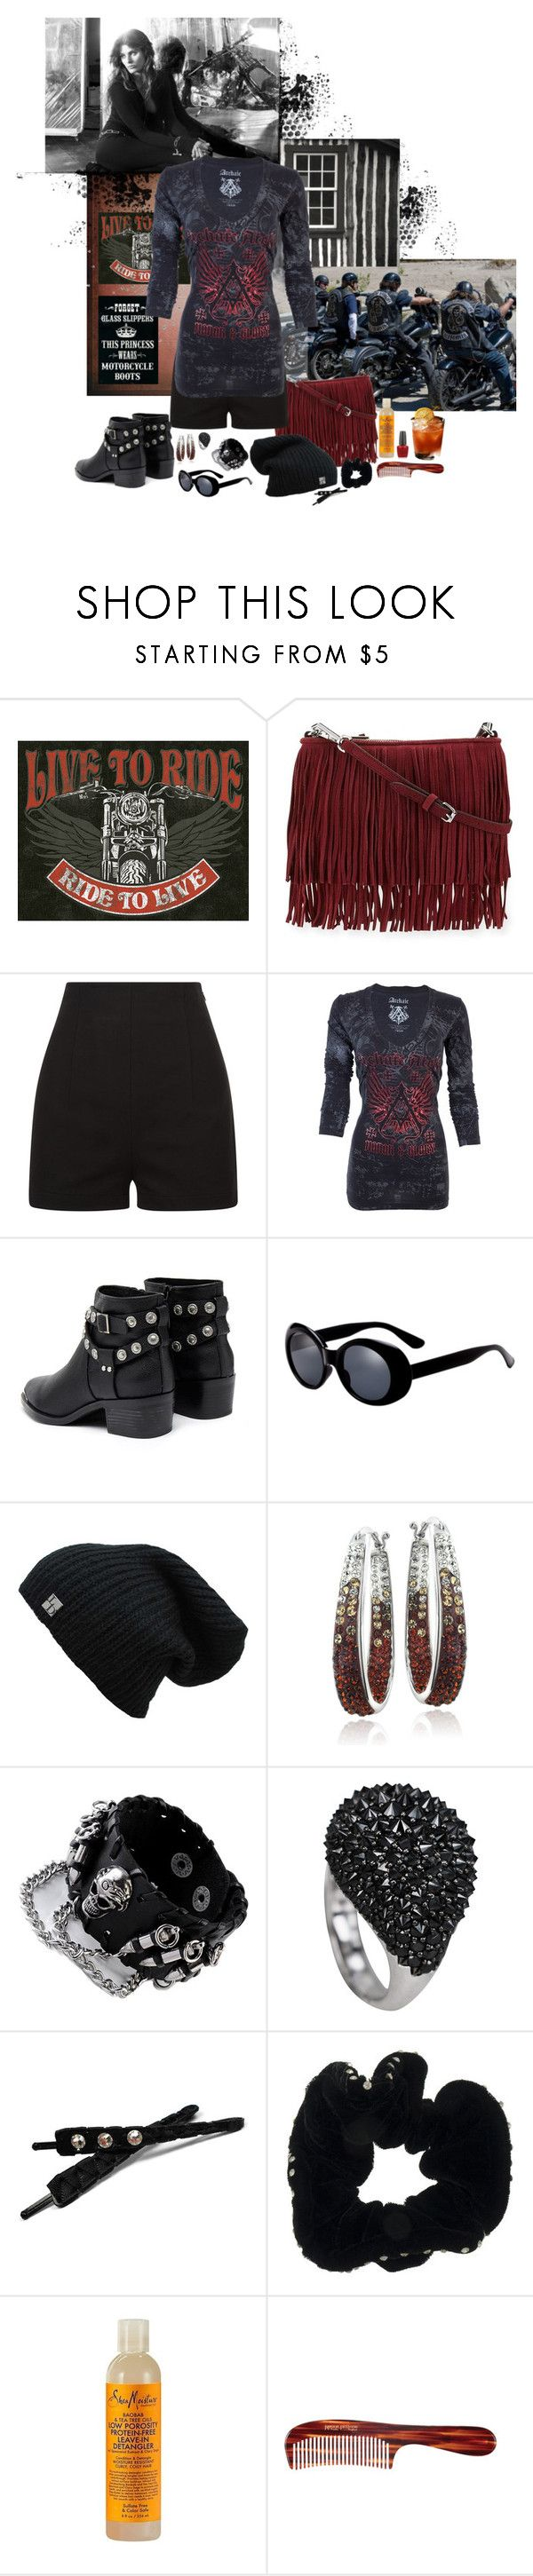 """Riding with MC"" by annakitauzu ❤ liked on Polyvore featuring Sons of Anarchy, Redemption Choppers, Rebecca Minkoff, Senso, Gregory Ladner, SheaMoisture, Mason Pearson and OPI"